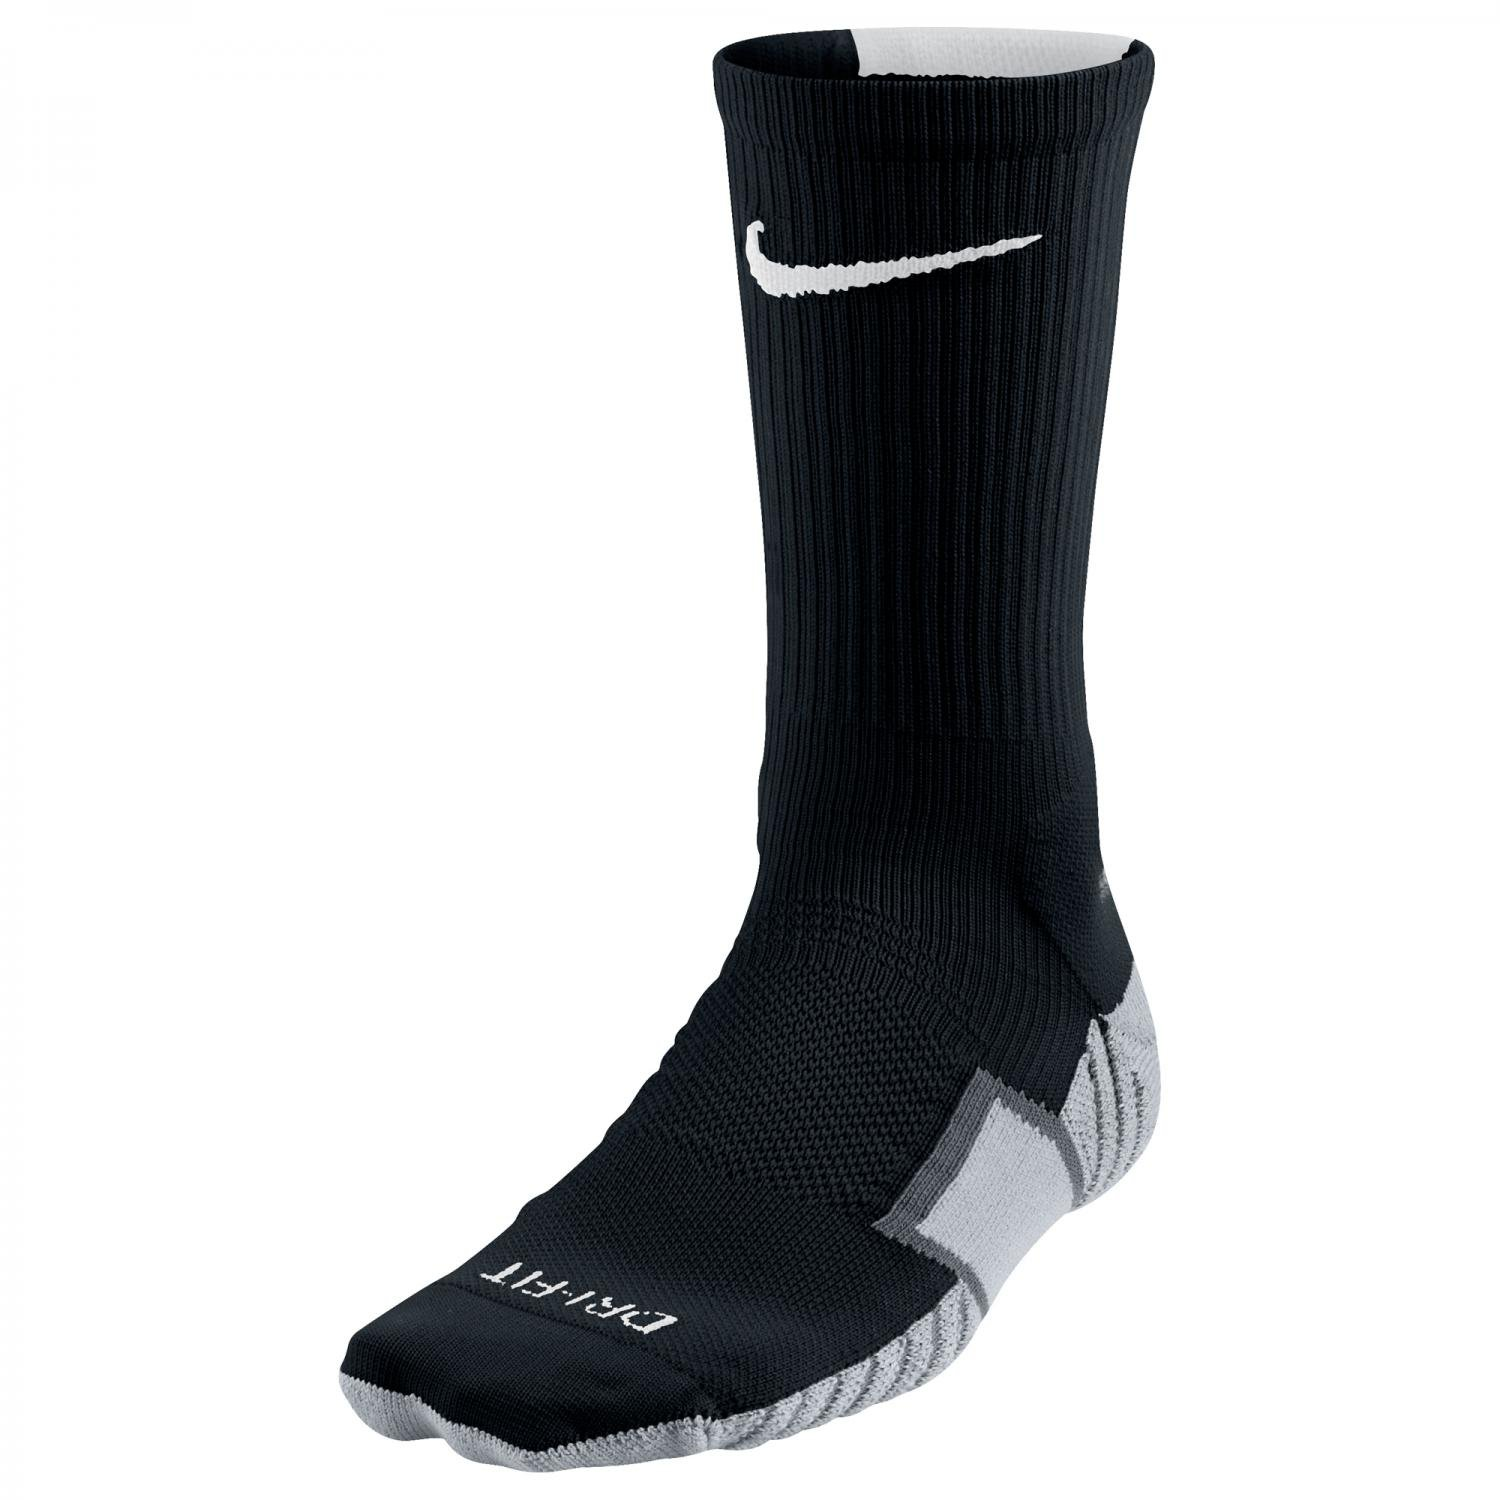 Buy Nike Shoes Extras Now!